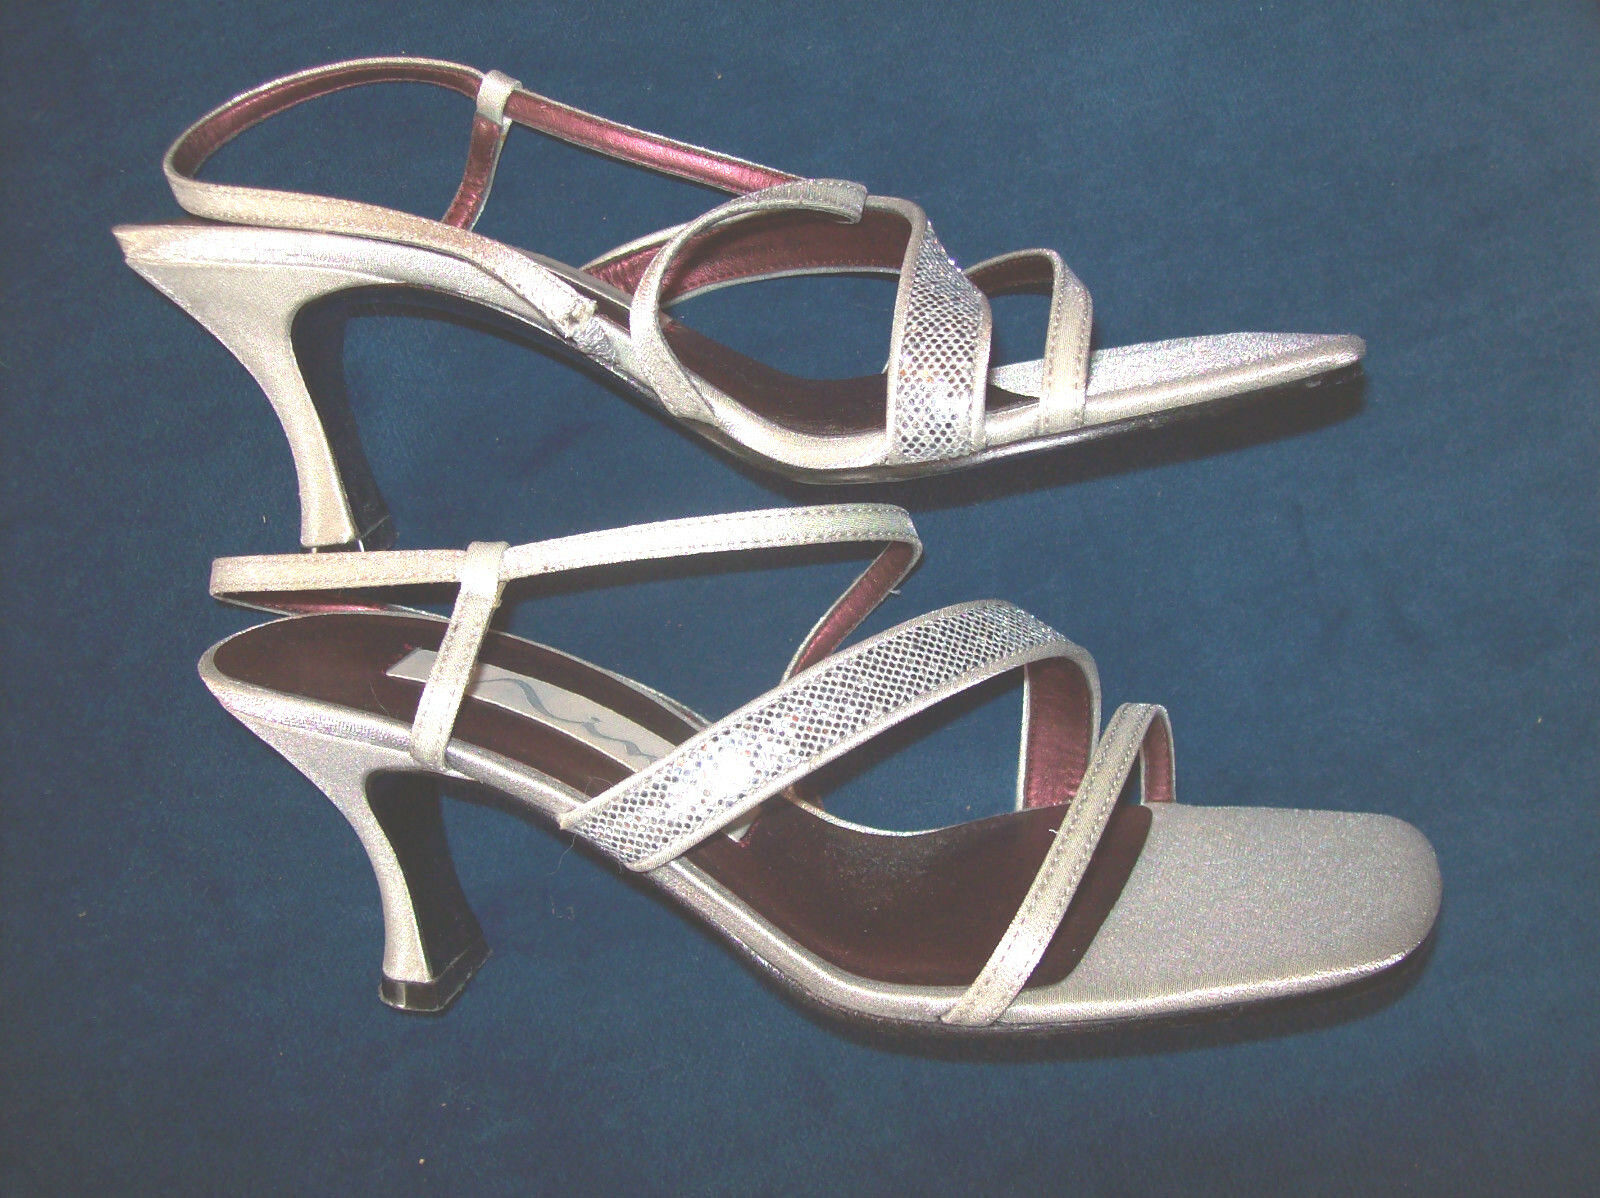 LADIES DRESS SANDALS  BY  NINA SILVER HIGH HEEL WITH SILVER GLITTER STRAP